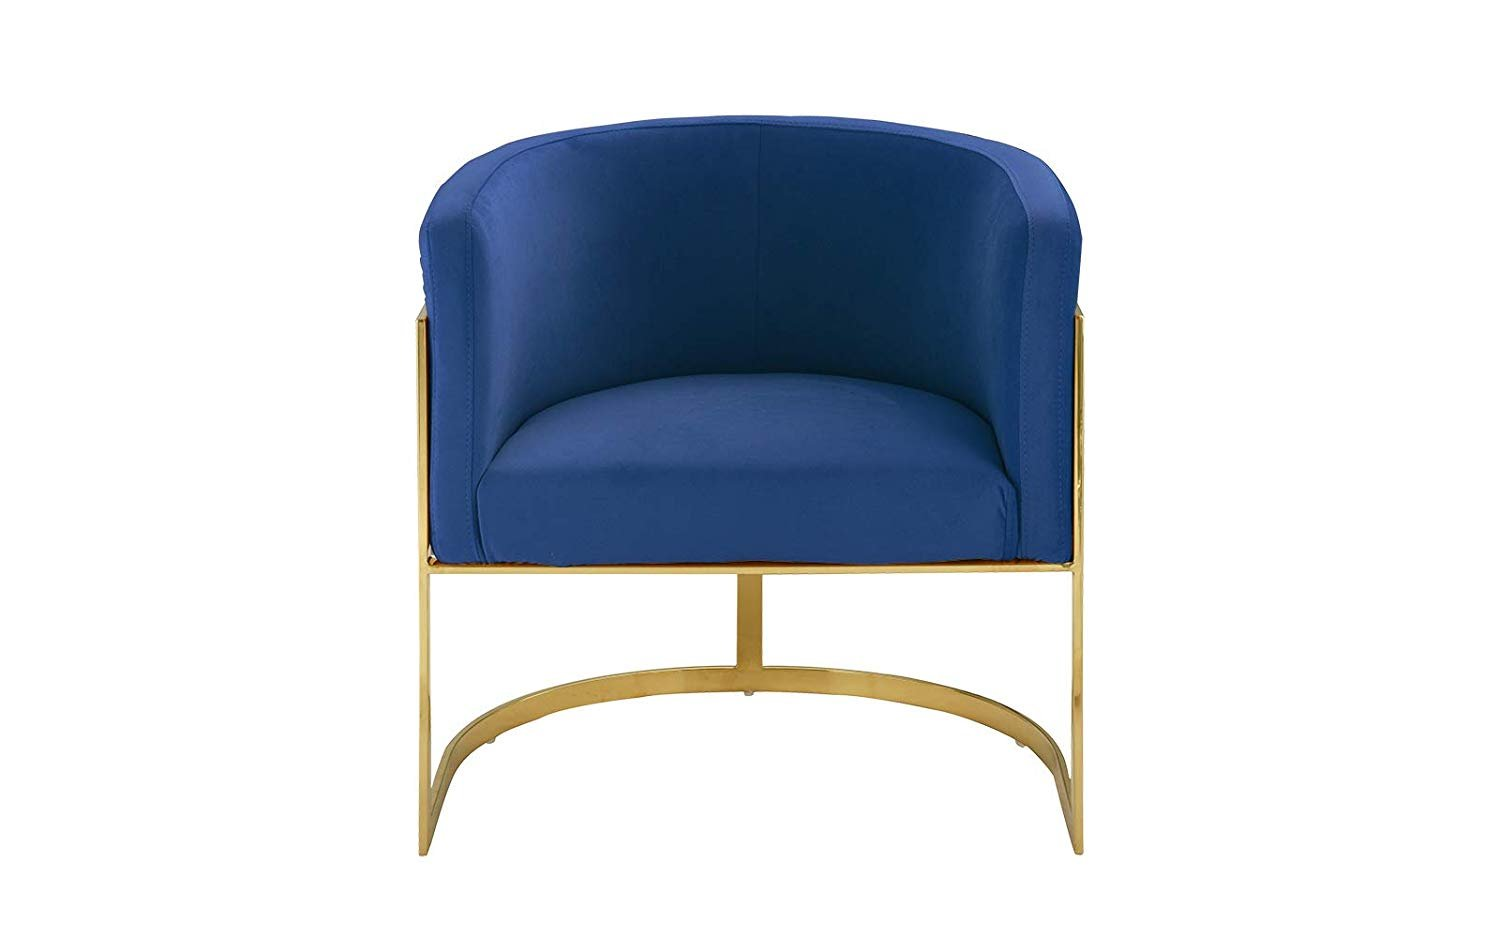 Swell Details About Modern Round Brush Microfiber Accent Armchair With Gold Legs Frame Navy Blue Evergreenethics Interior Chair Design Evergreenethicsorg